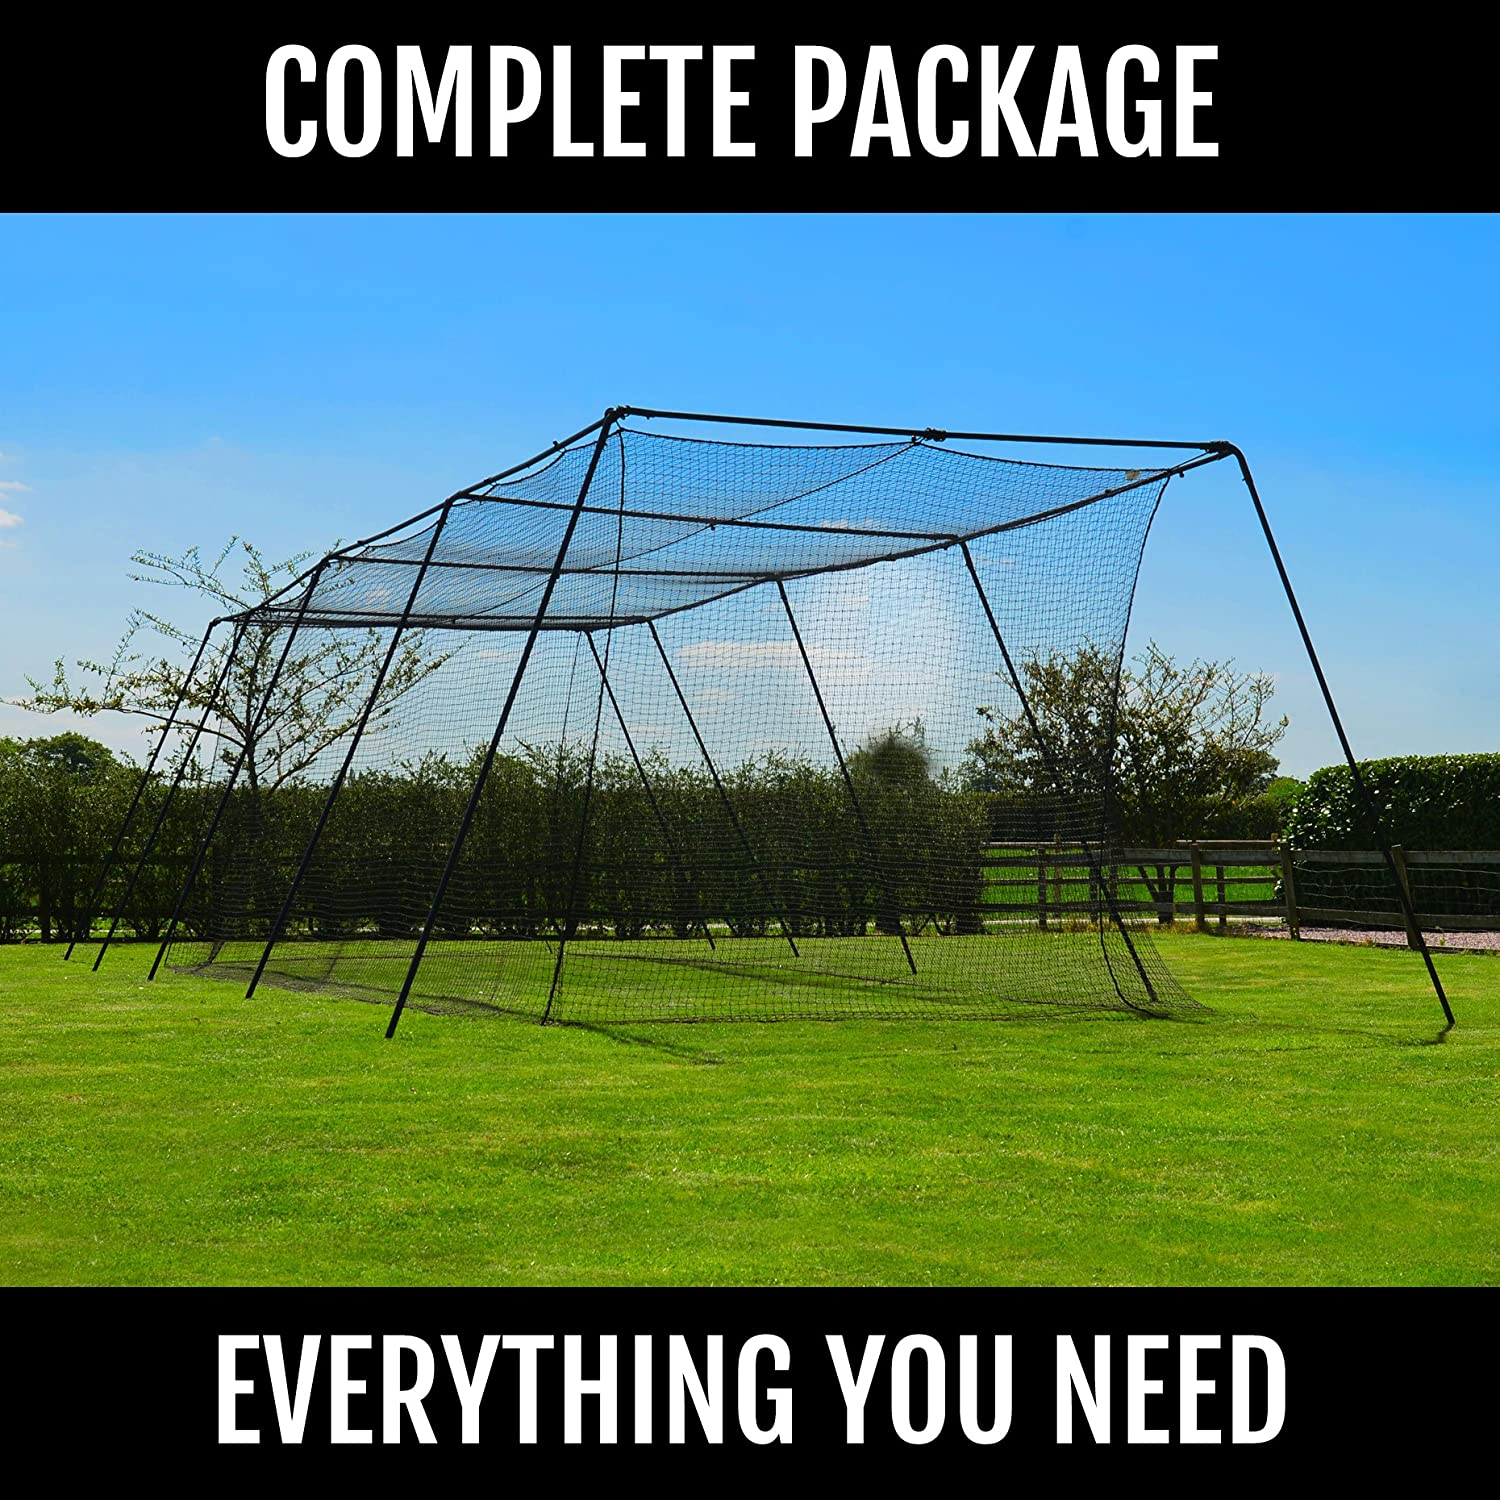 Amazon.com : FORTRESS Trapezoid Baseball Batting Cage [Complete Package]    Softball Hitting Cage Net : Sports U0026 Outdoors